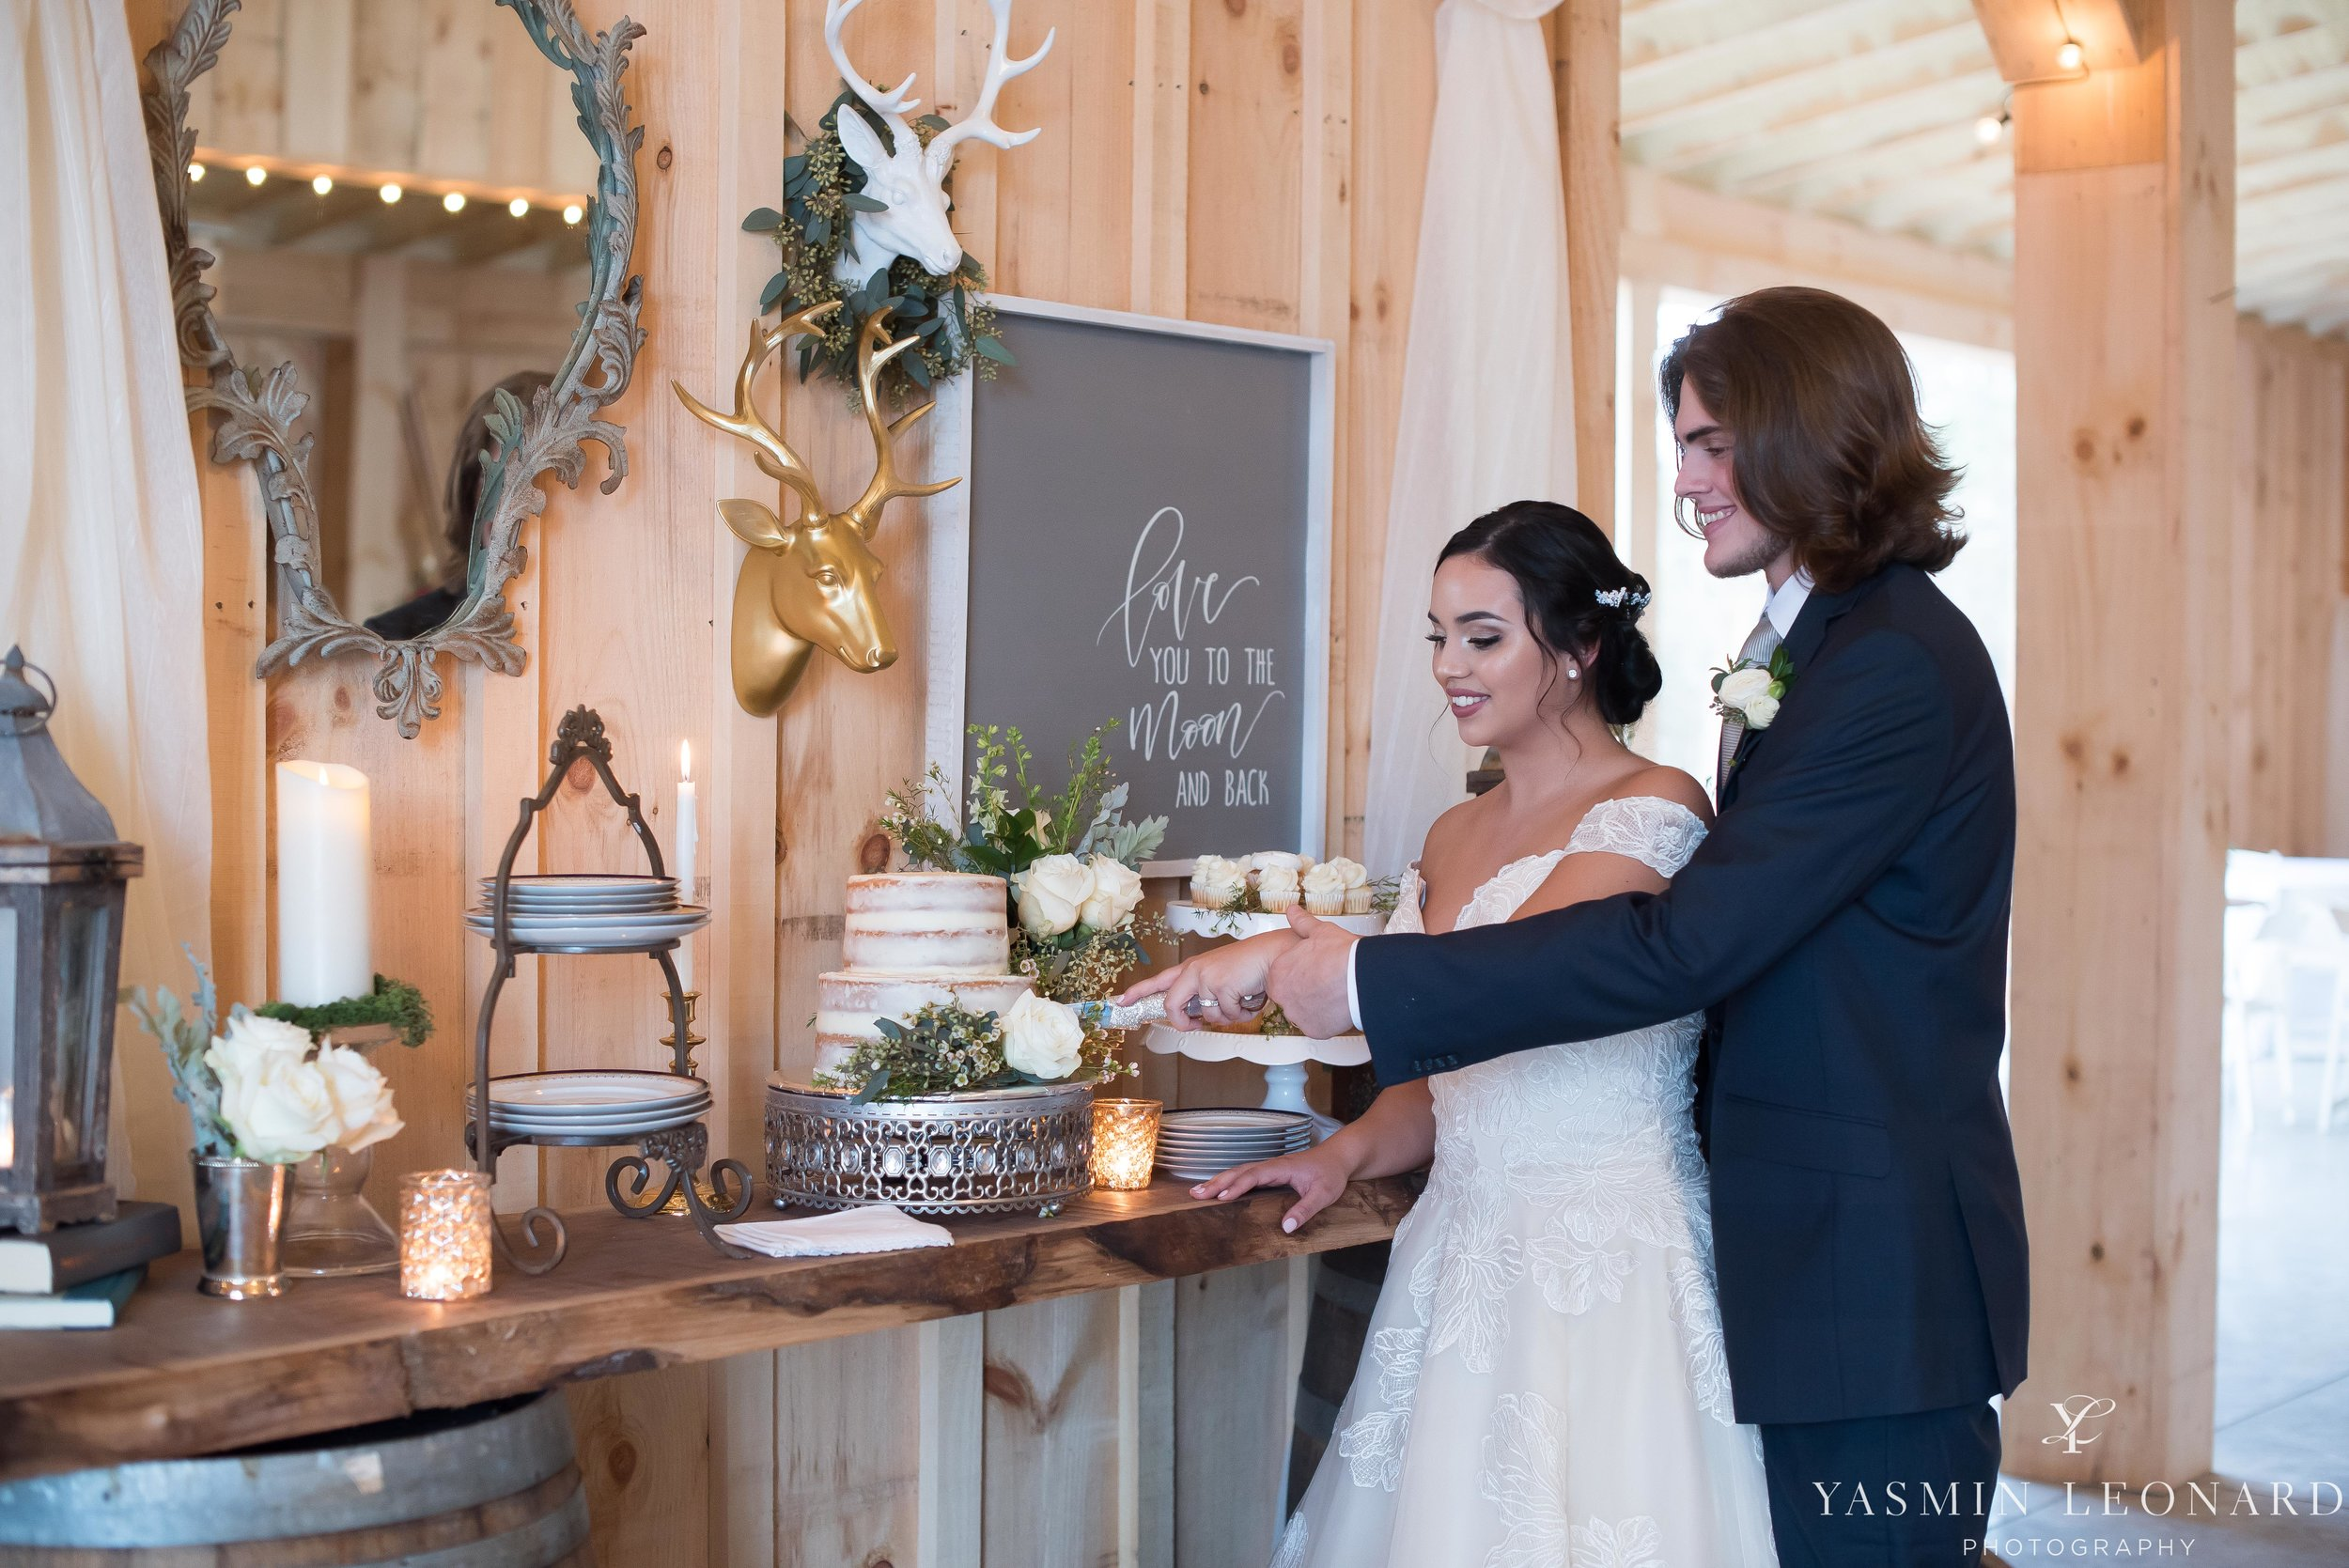 Old Homeplace Vineyard - Grits and Glitter - Dashing Dames Bridal Boutique - Just Priceless - Yasmin Leonard Photography - High Point Weddings - NC Weddings - NC Wedding Venues - High Point Jewelers - NC Wines - NC Vineyards - Cupcake Cuties-72.jpg